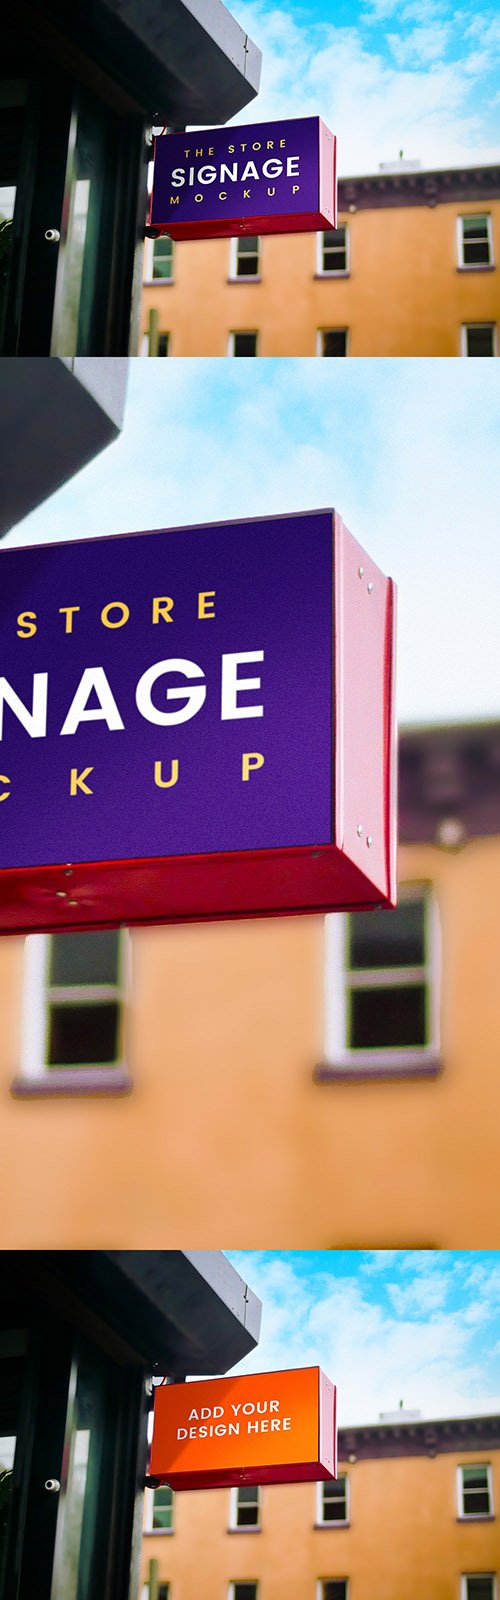 PSD Mock-Up - Outdoor Store Signage